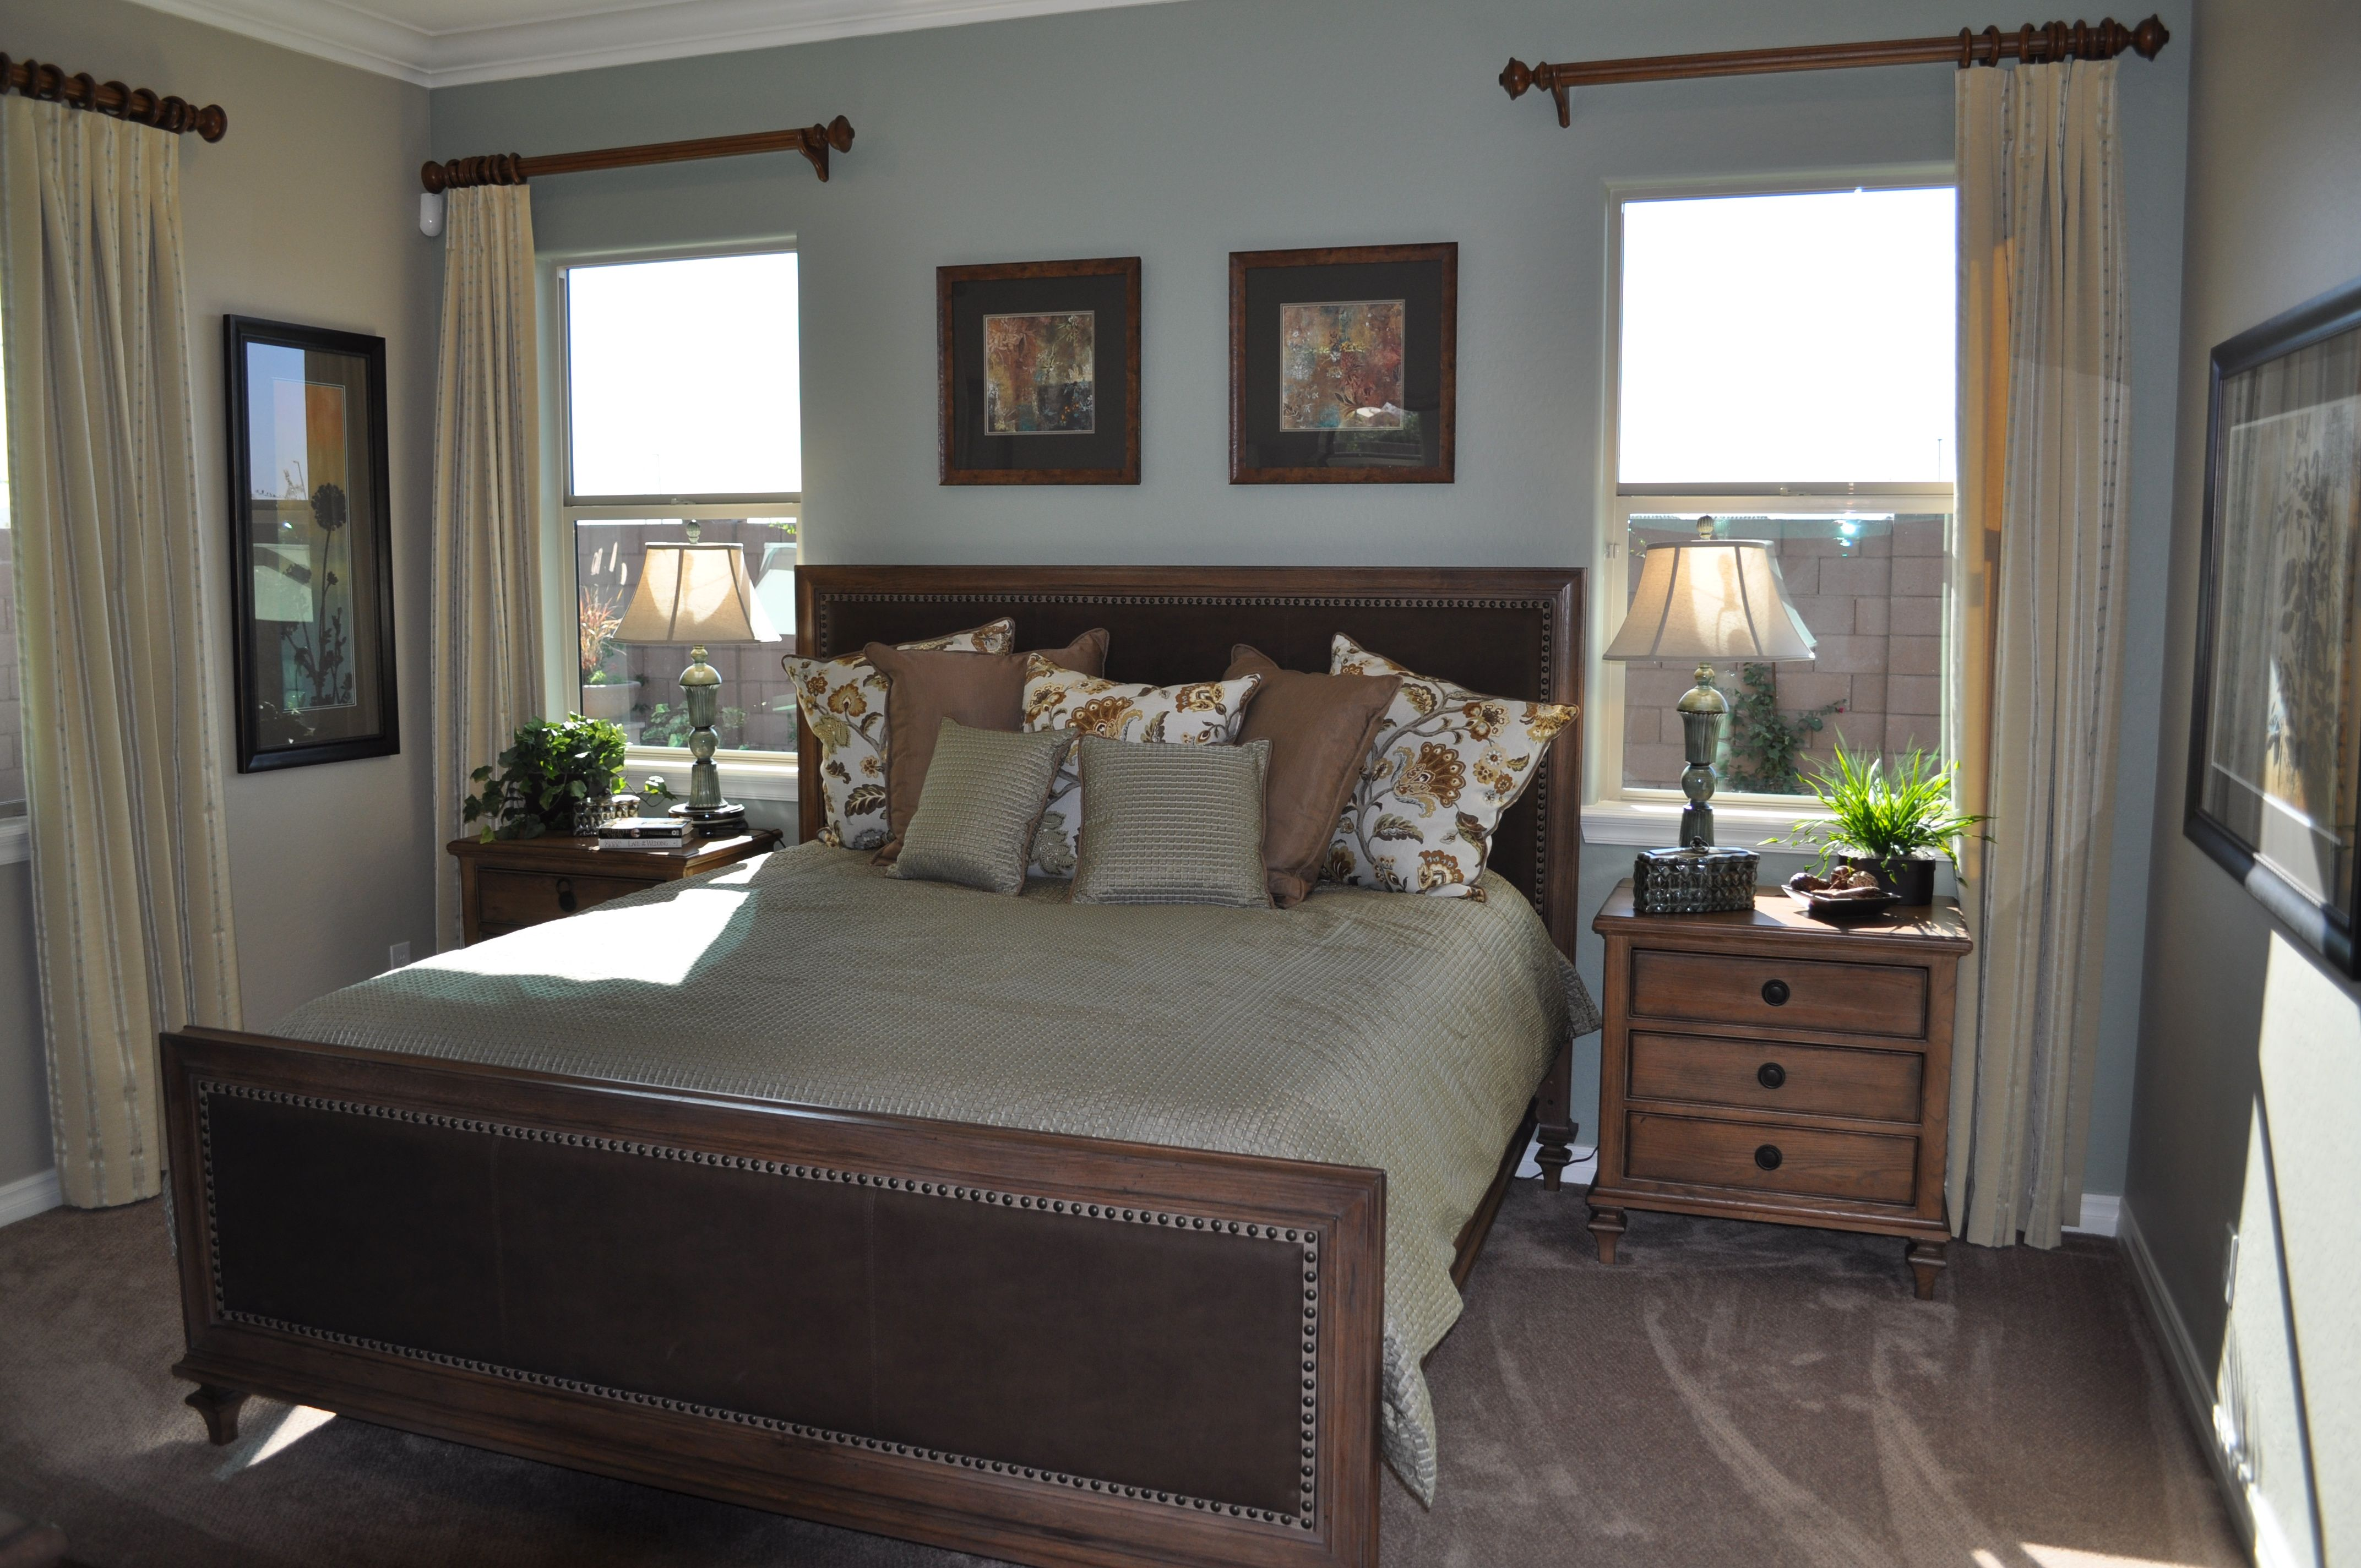 Best Great Window Treatments That Frame The Wall Where The Bed 400 x 300